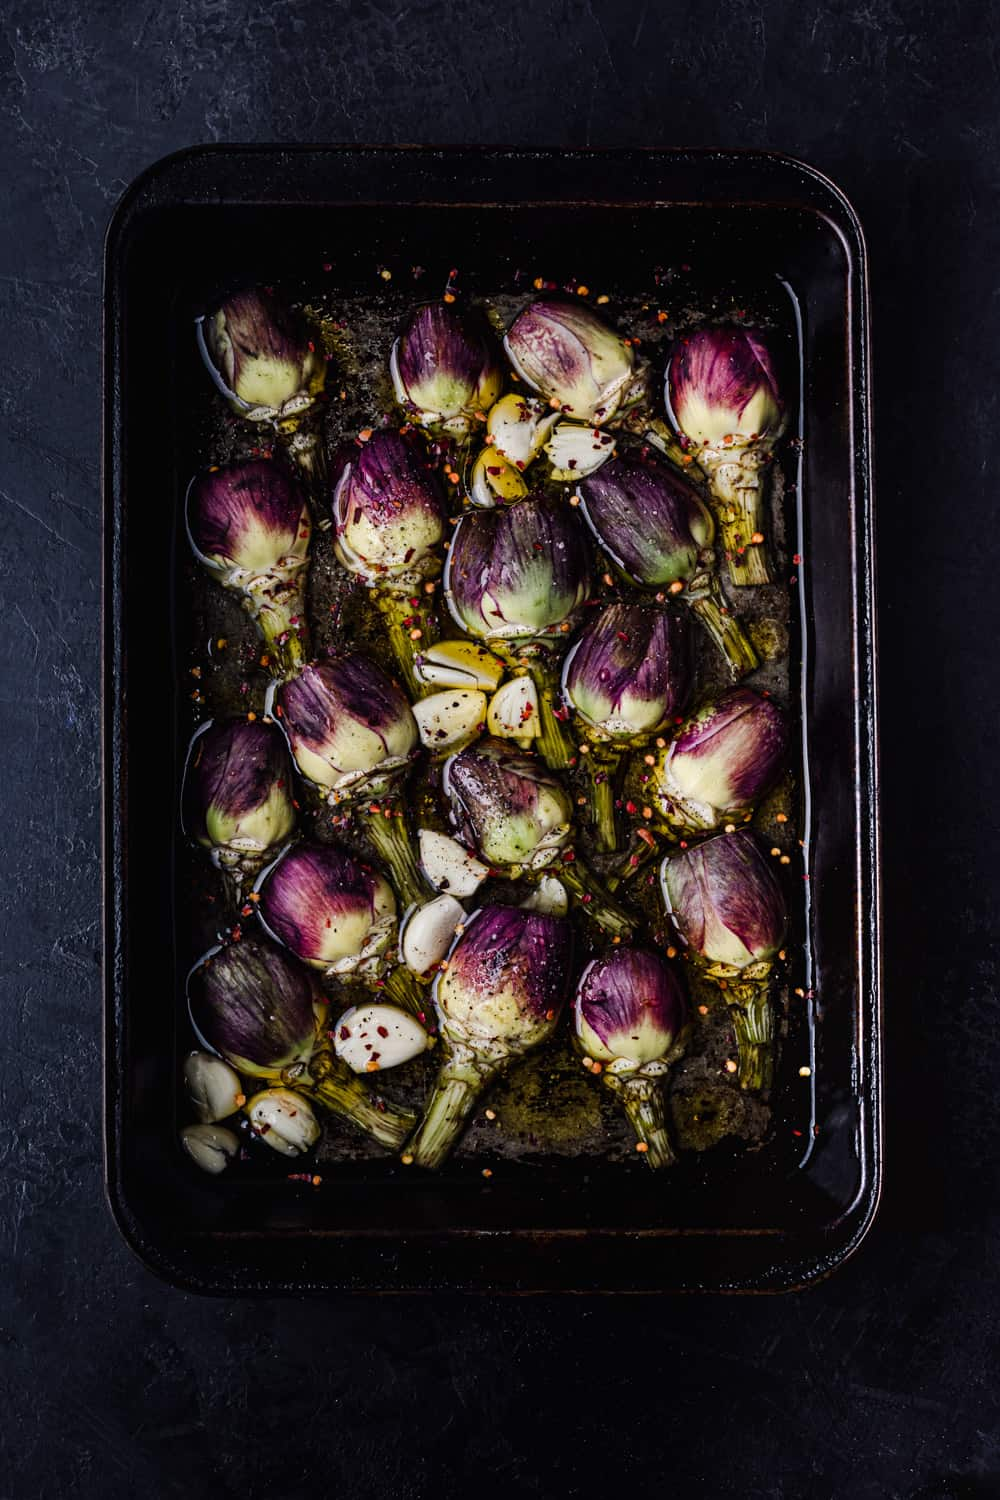 Artichokes with lemon, white wine, water, olive oil, garlic, chili flakes, salt and pepper.